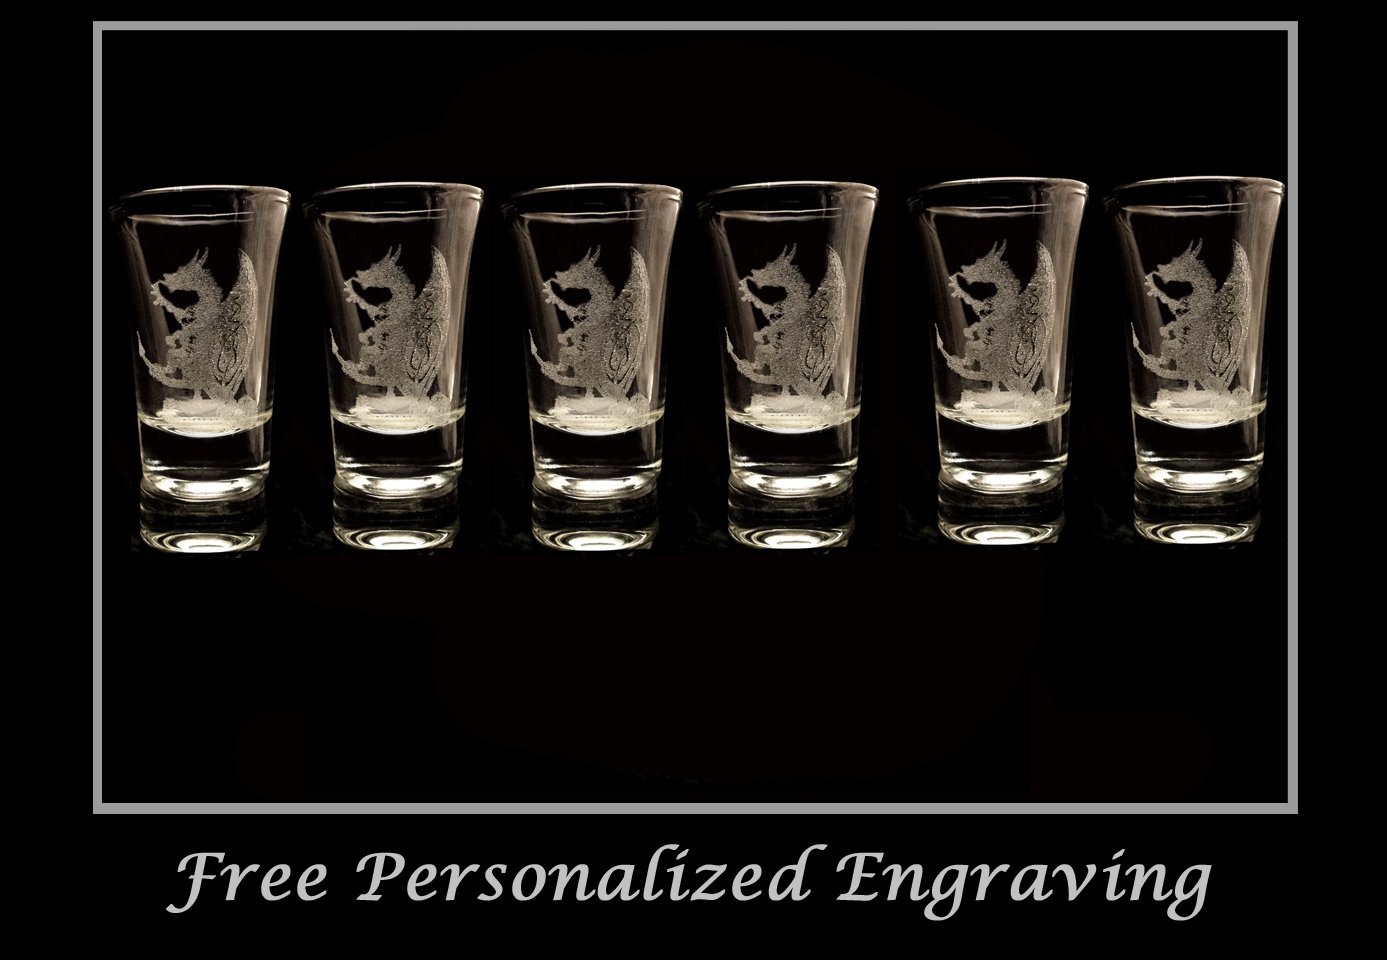 Celtic Dragon Shot Glass Set of 6 - Free Personalized Engravin\